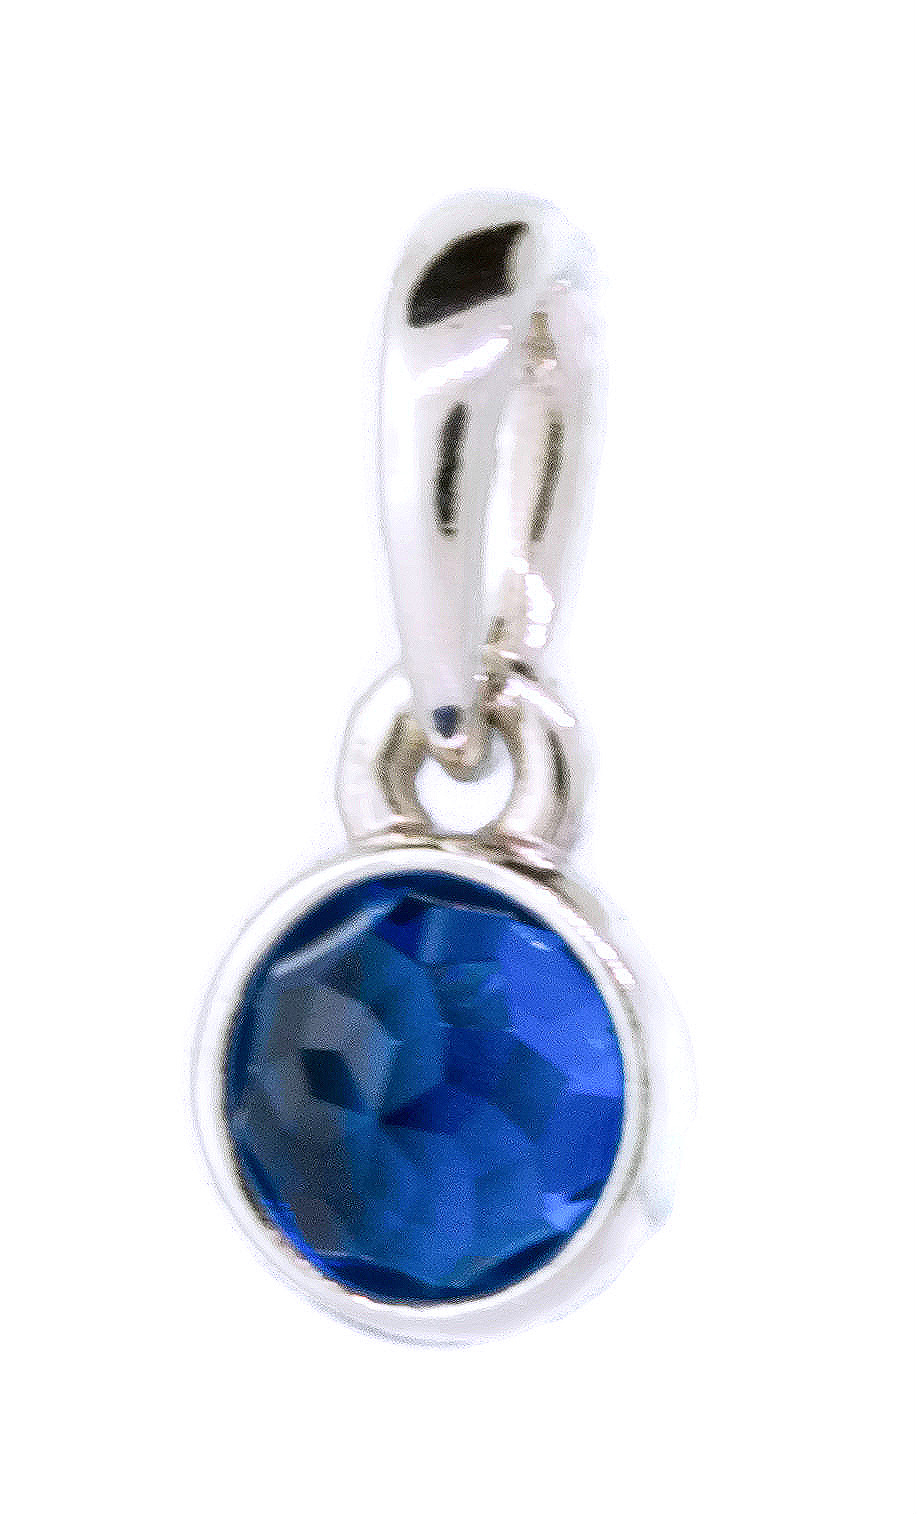 Authentic December Droplet Pendant, London Blue Crystal 390396Nlb Intended For Latest London Blue Crystal December Droplet Pendant Necklaces (View 2 of 25)